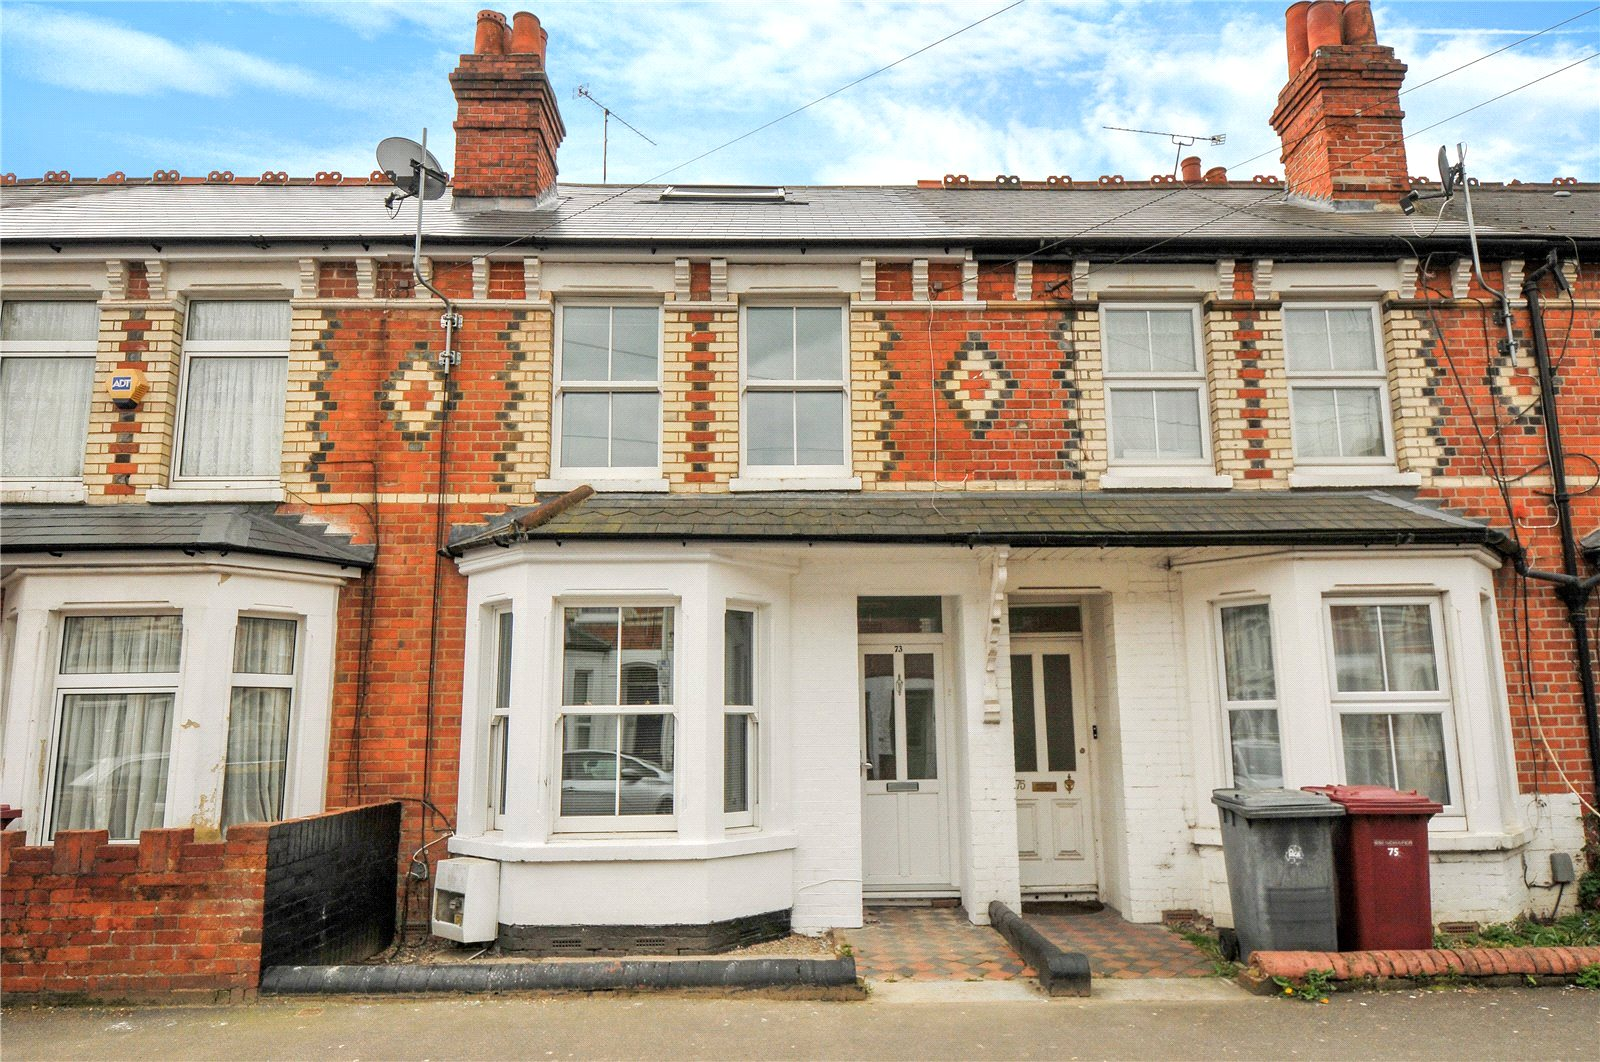 1 Bedroom House Share for rent in Curzon Street, Reading, Berkshire, RG30